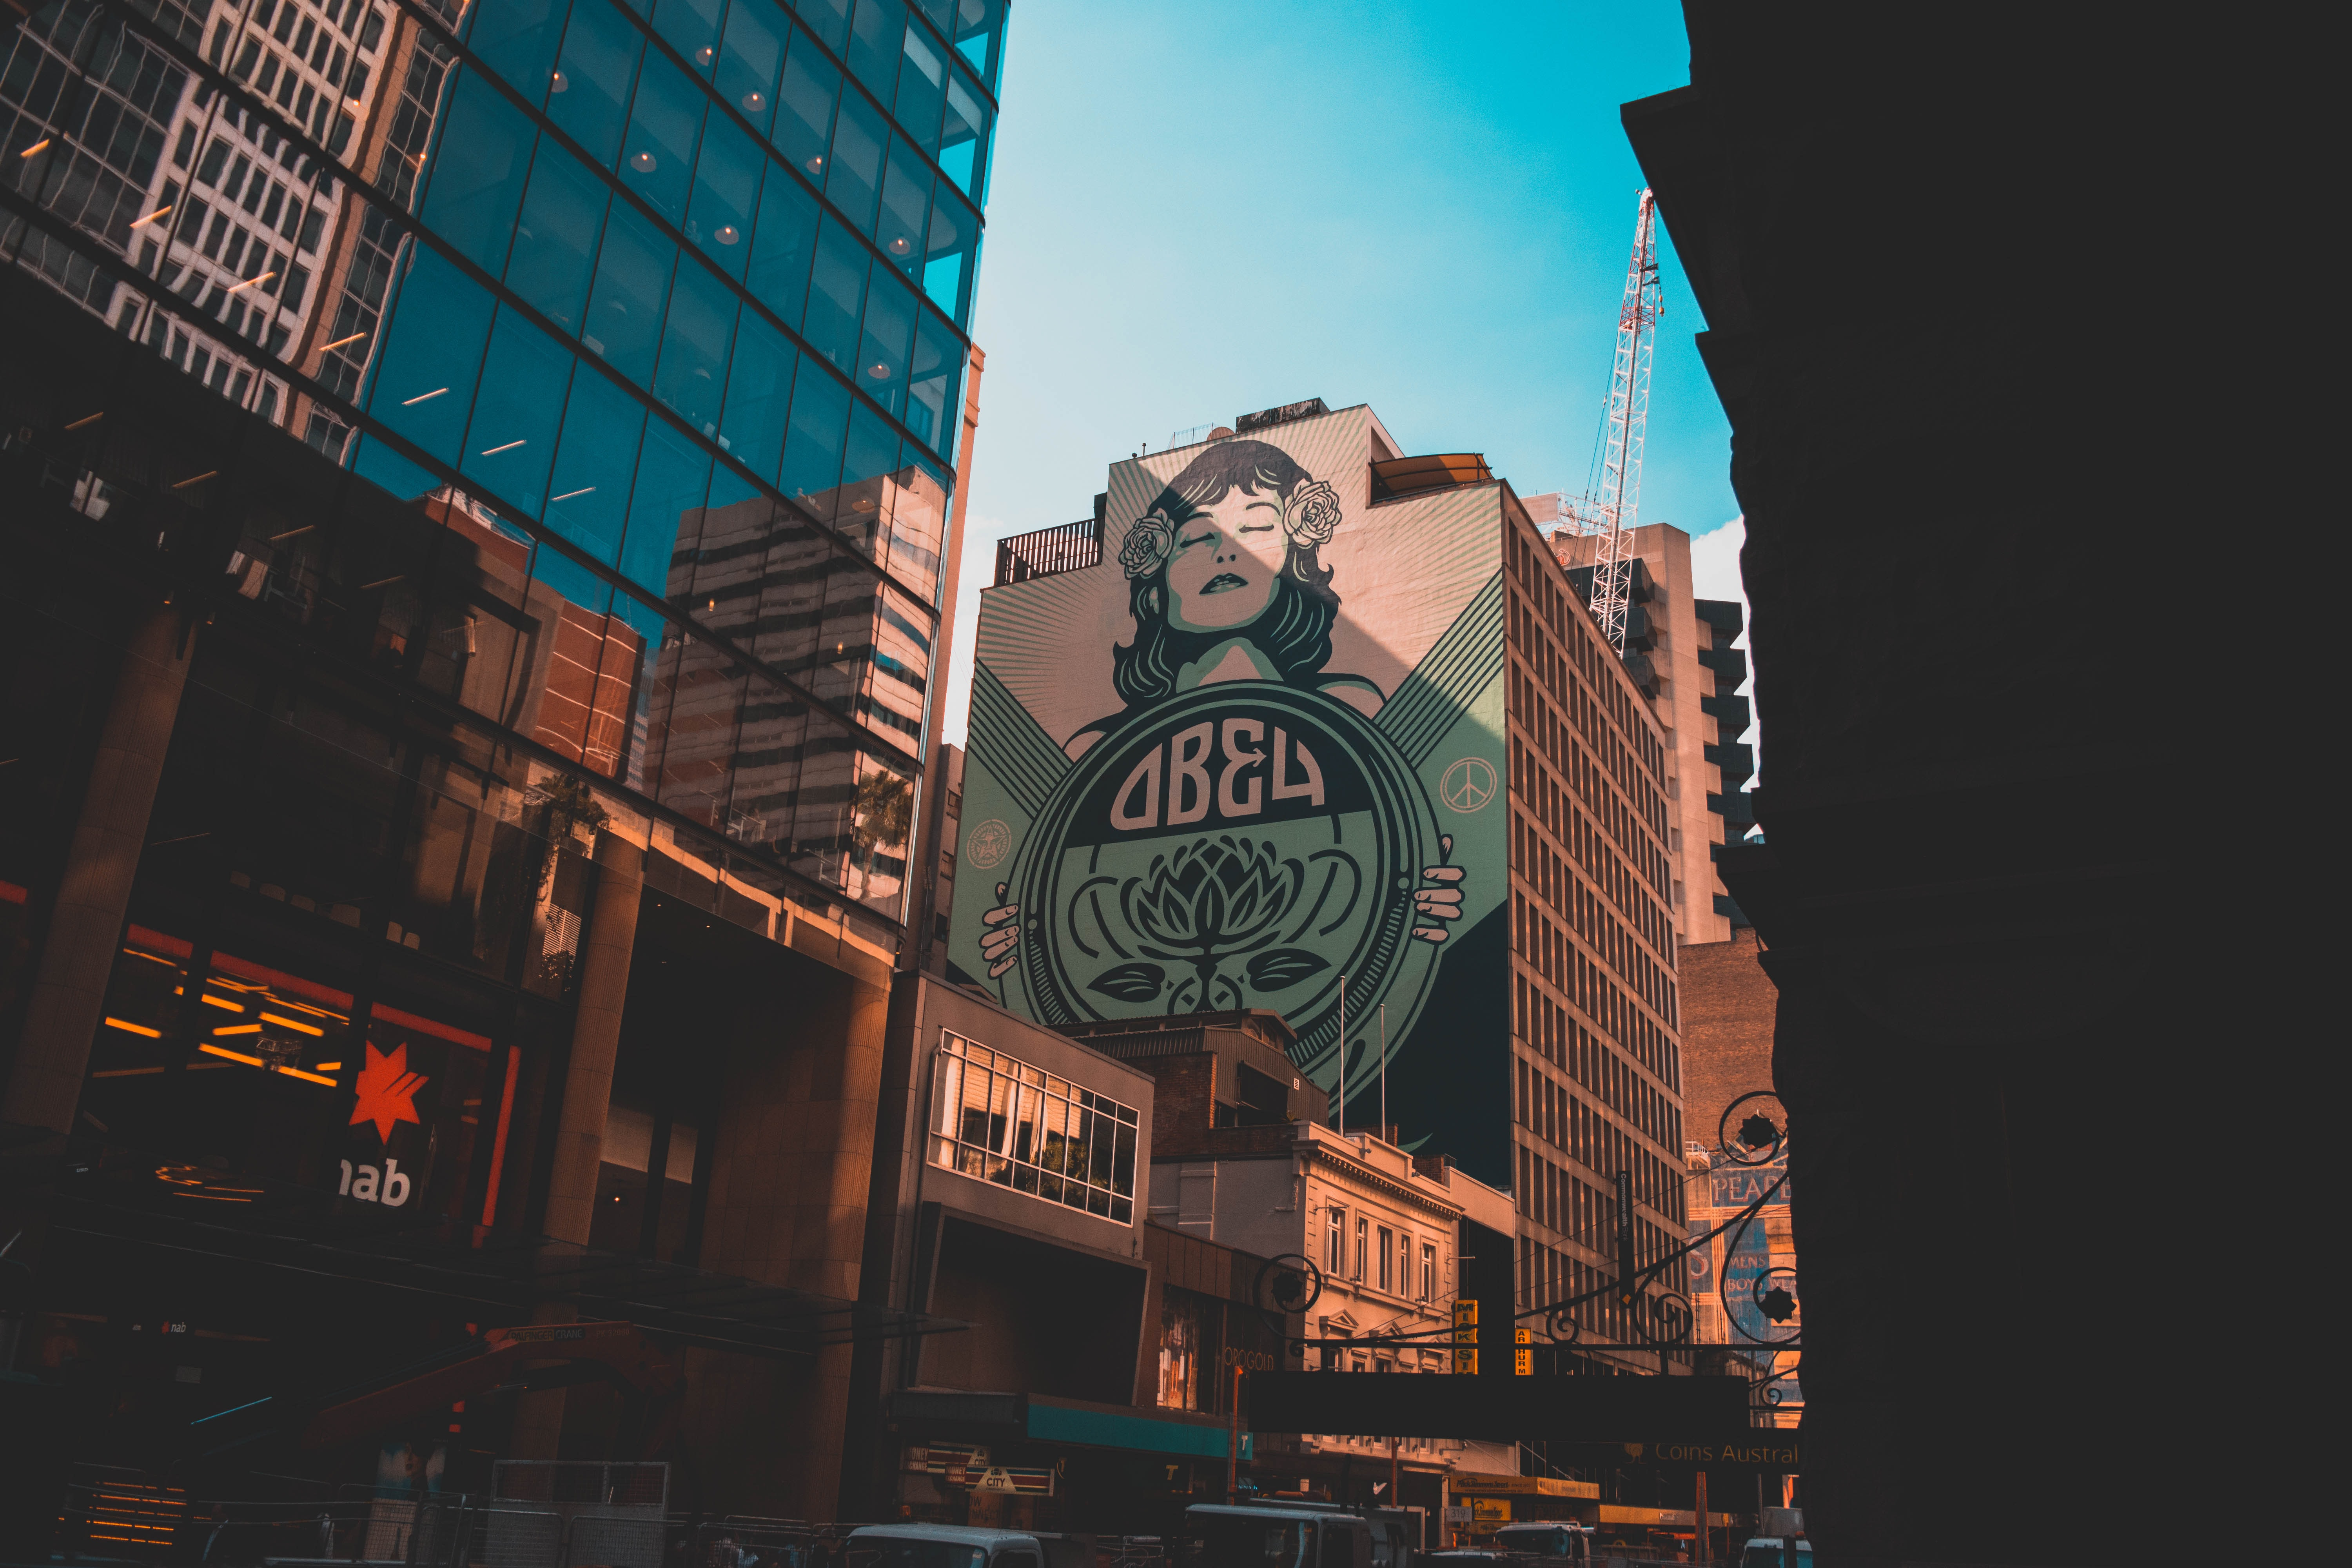 Obey billboard on brown building low-angle photography at daytime